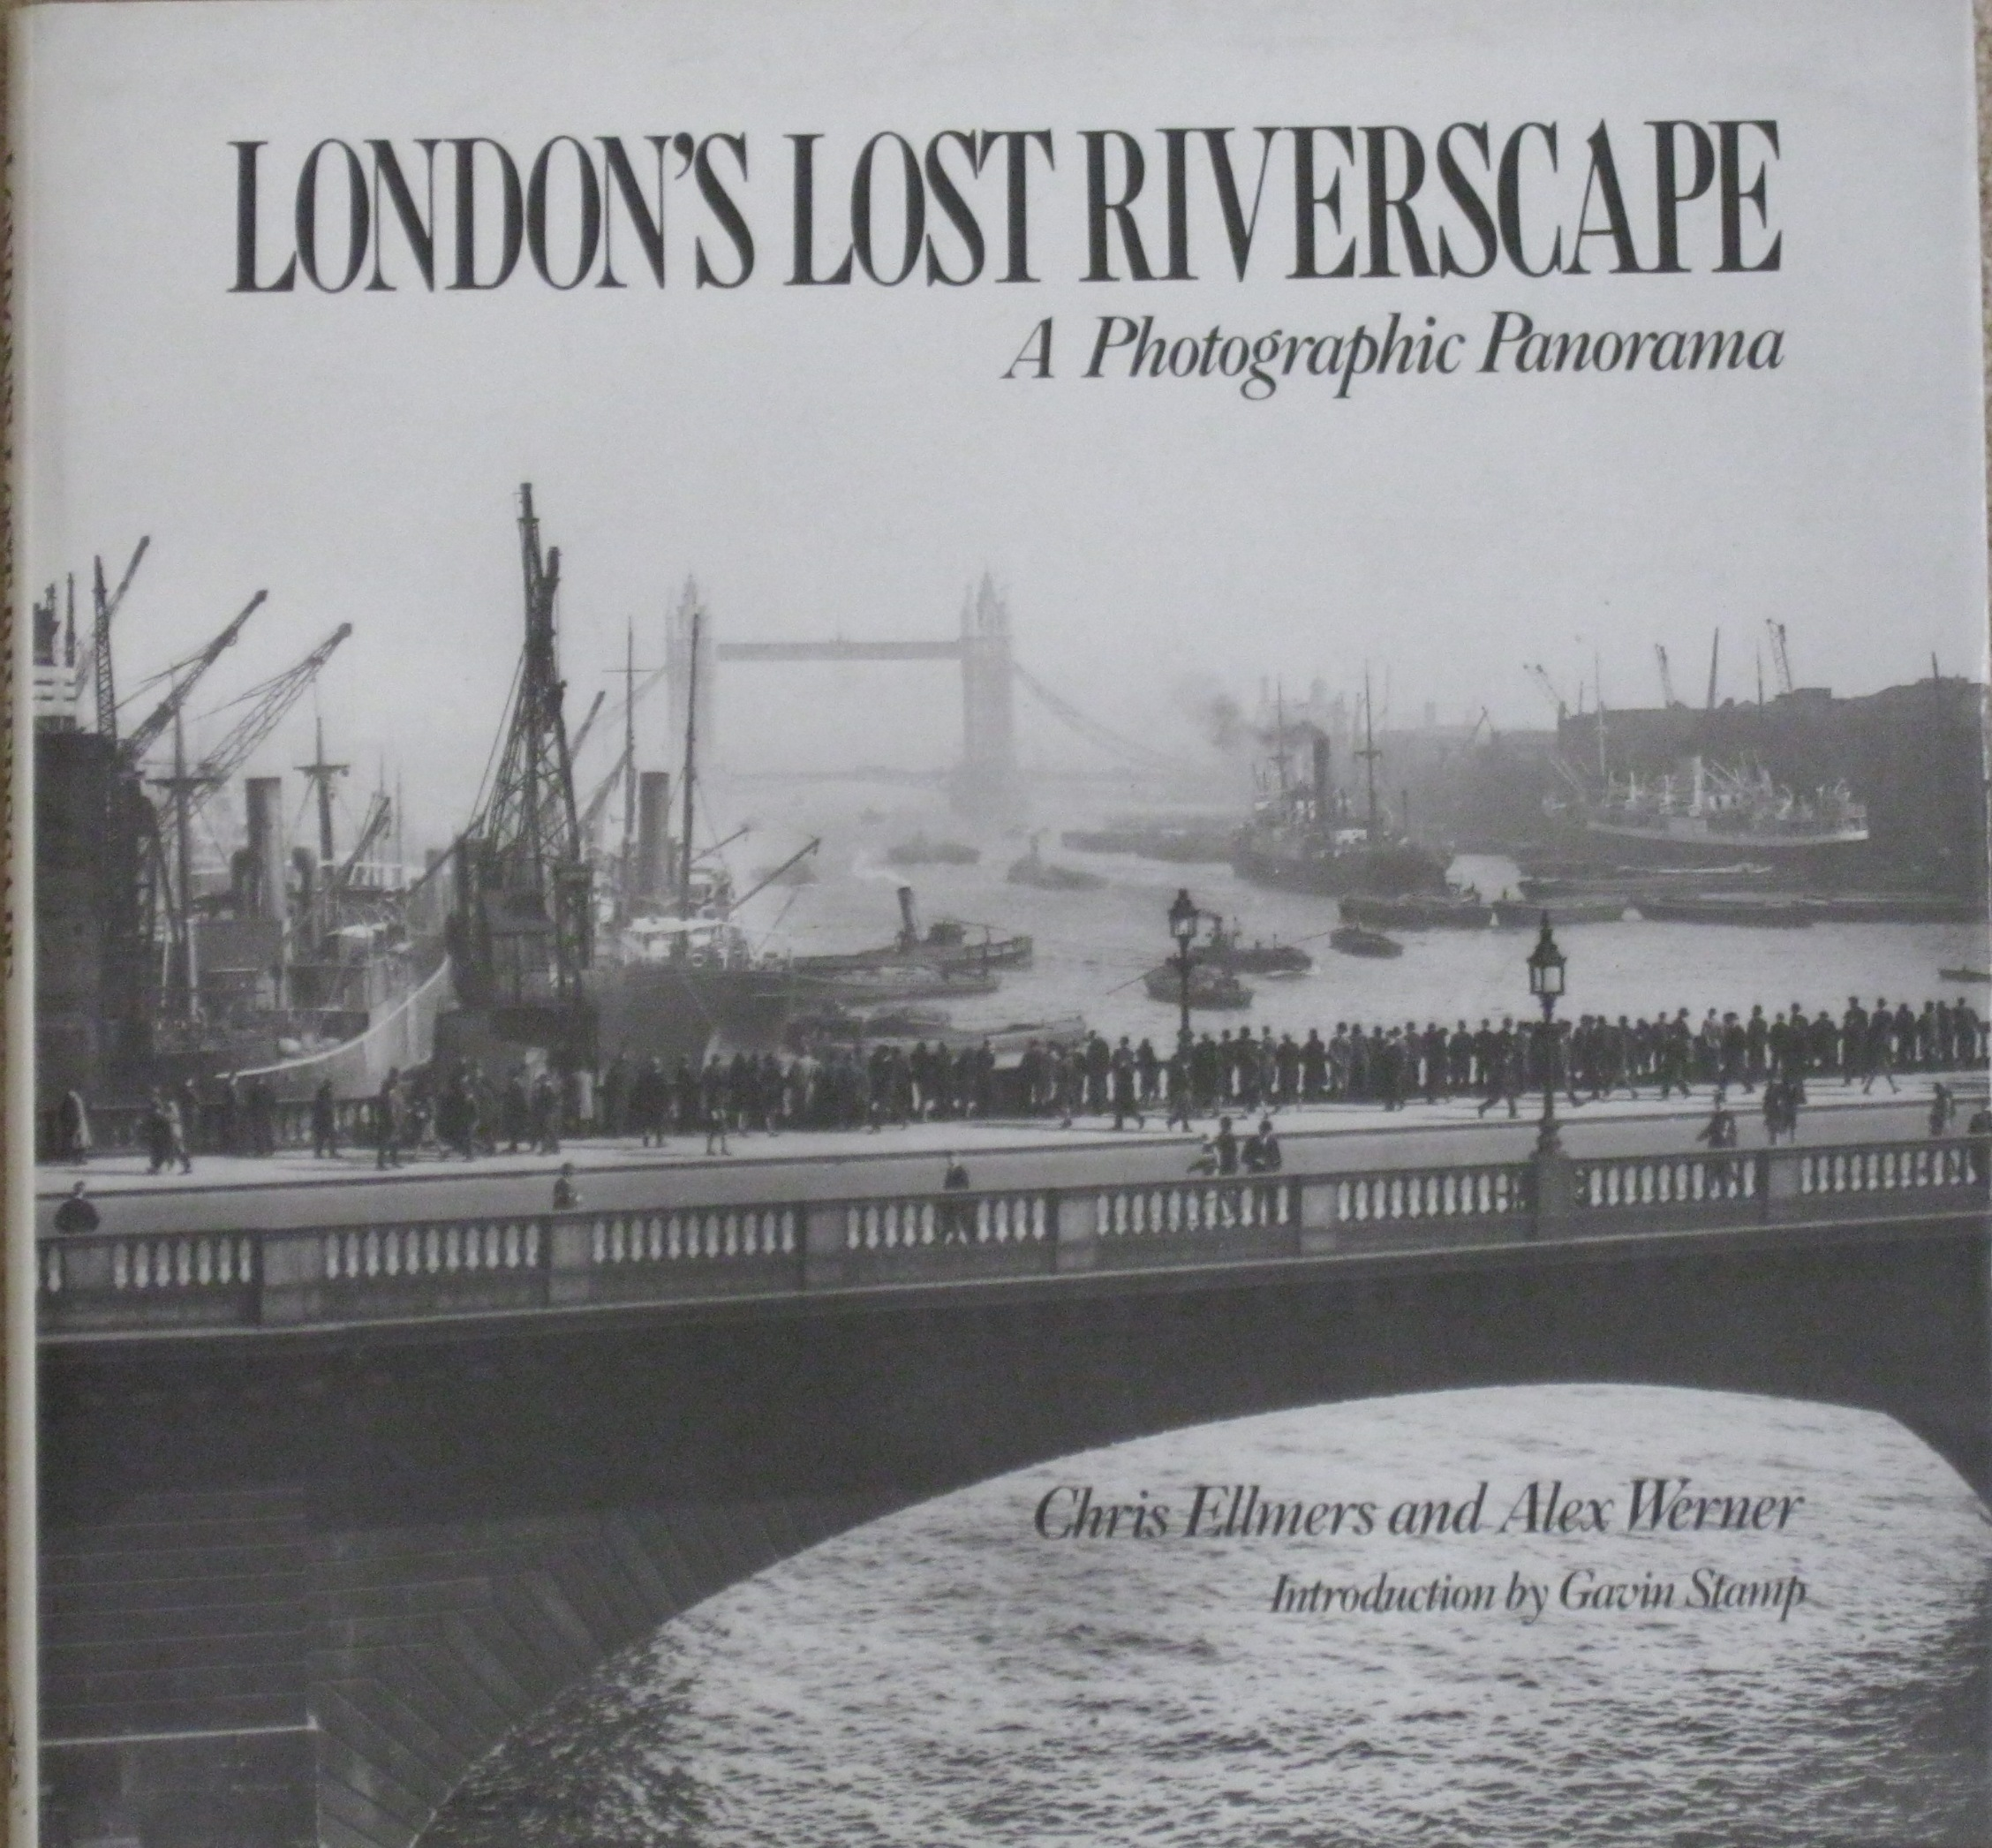 London's Lost Rivers...